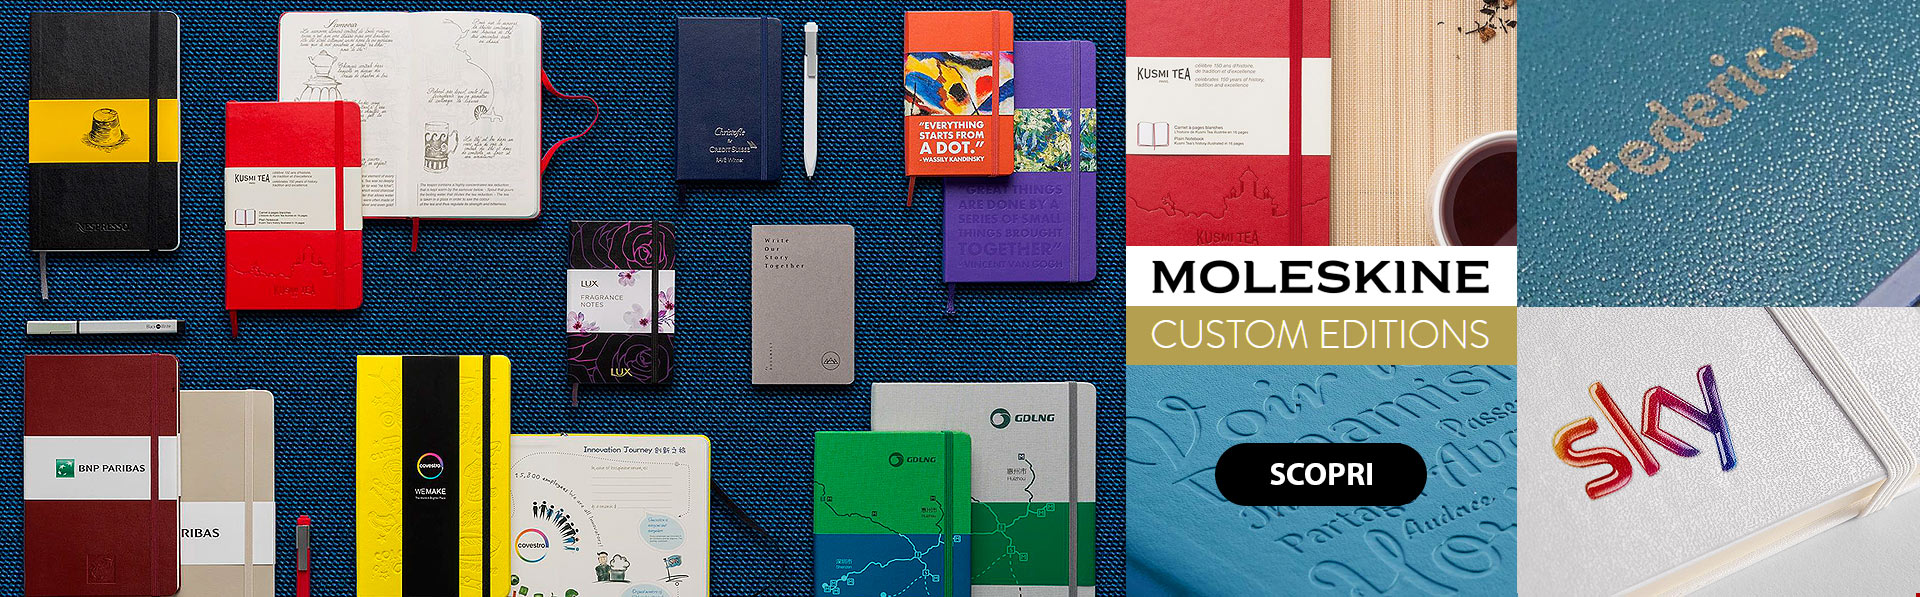 Molekine custom edition